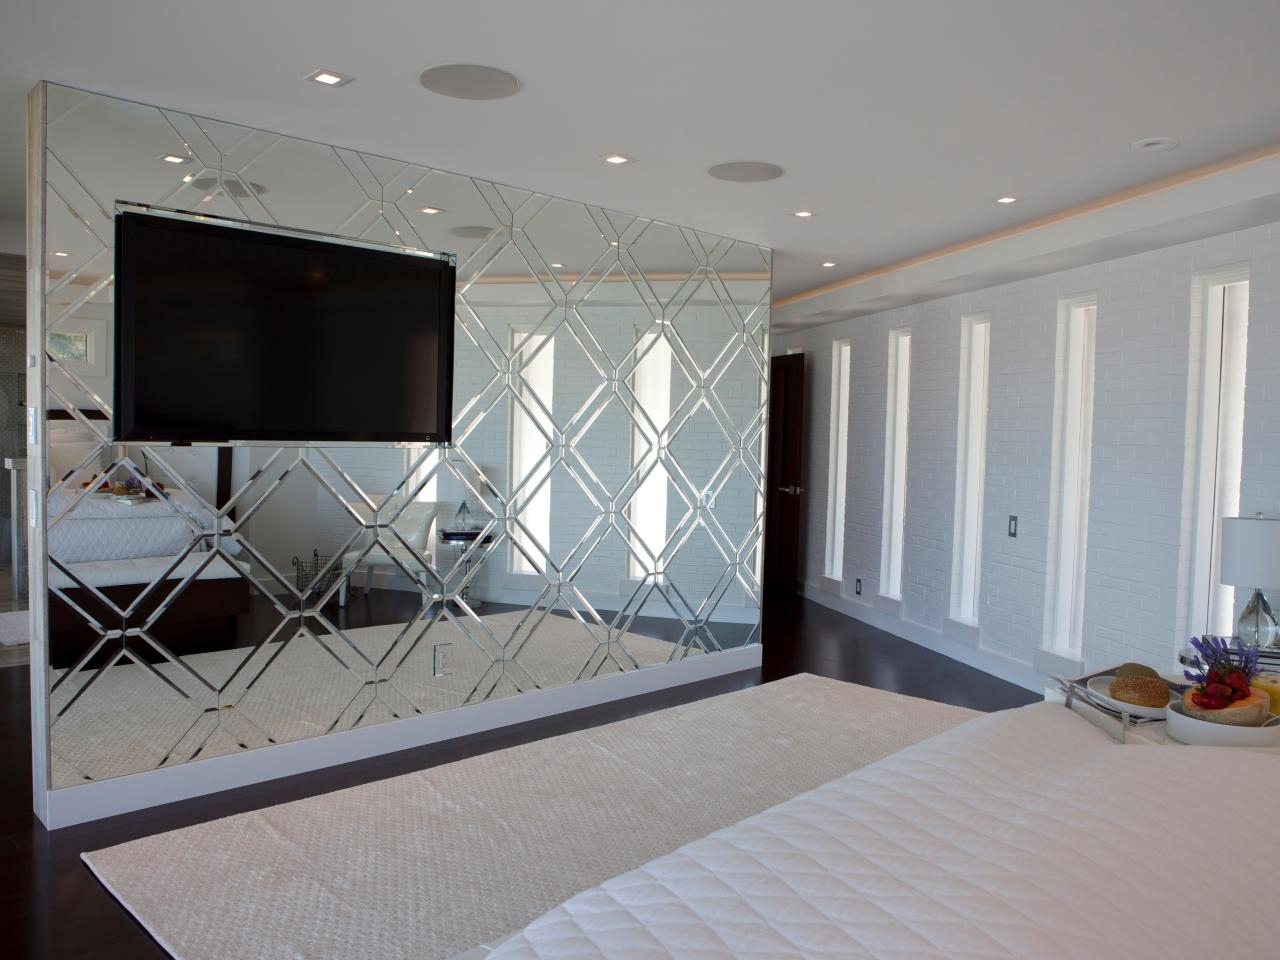 Well Known Bedroom Wall Mirror Houzz Design Ideas Bathroom Mirrors Simple In Full Length Decorative Wall Mirrors (View 16 of 20)